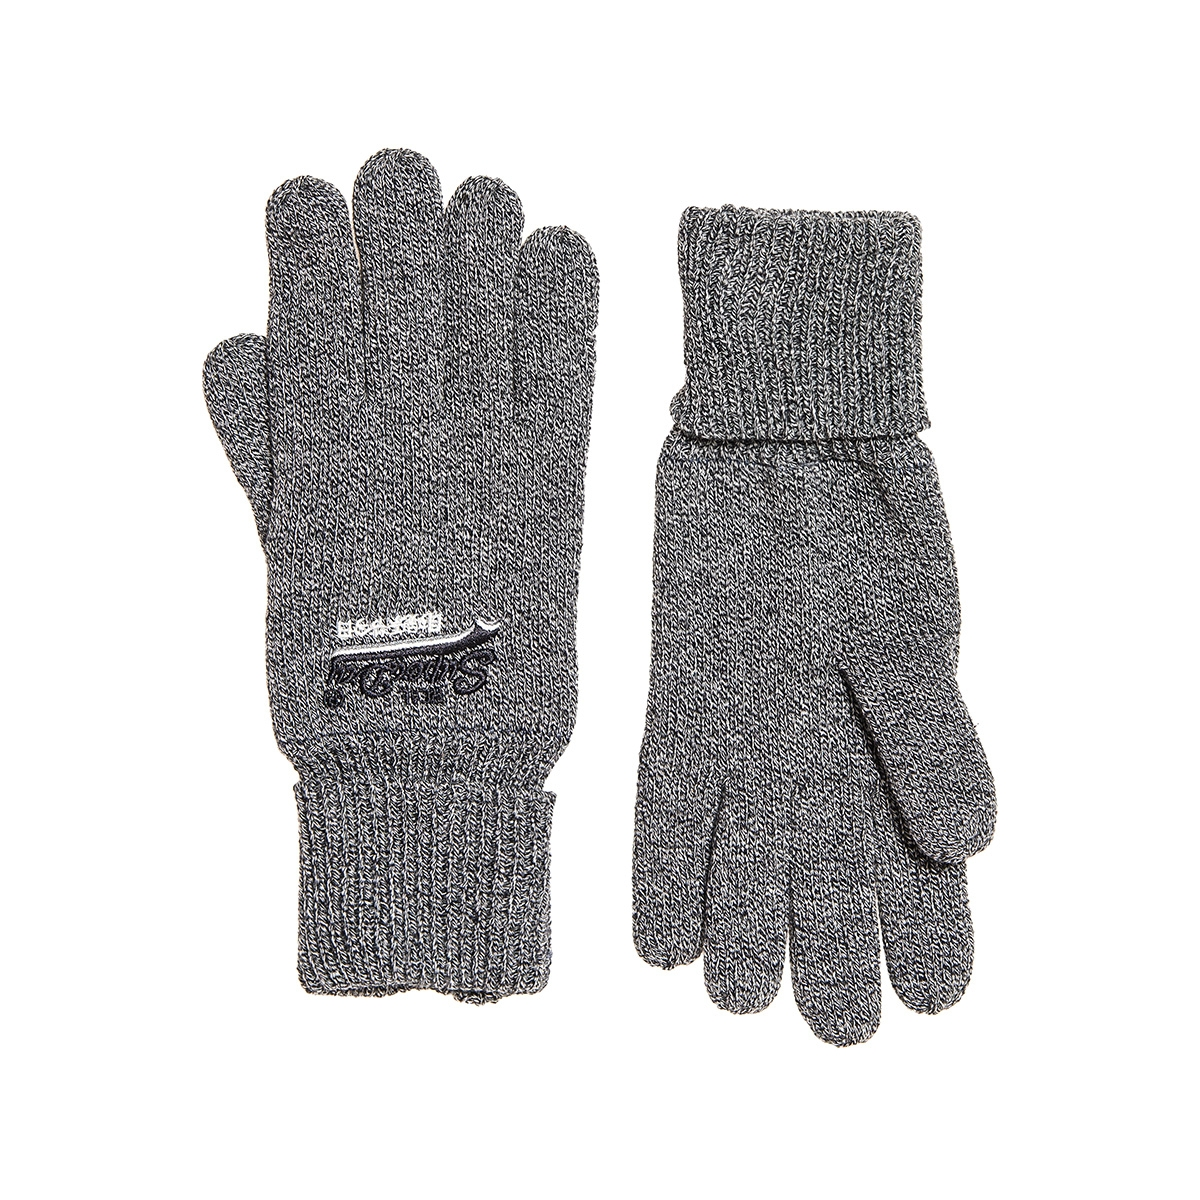 orange label glove m9300003a superdry accessoire basalt grey grit